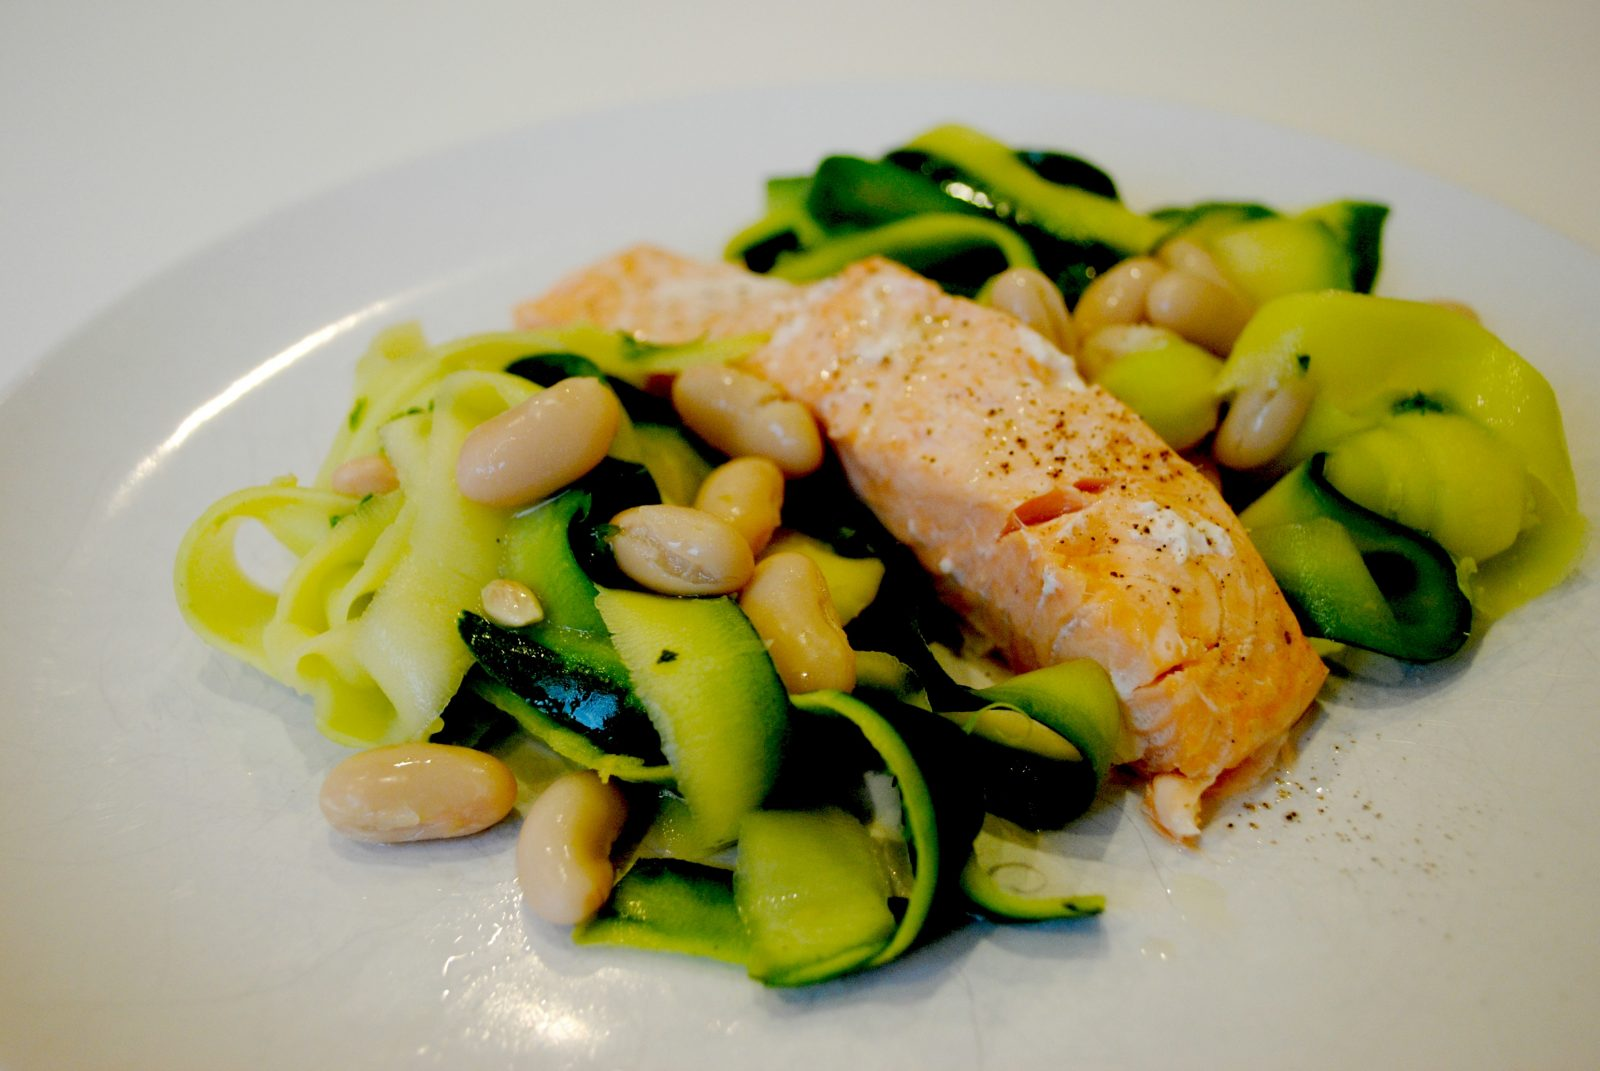 Baked Salmon Fillets with Courgette Ribbons, Cannellini Beans & Lemon Oil Dressing